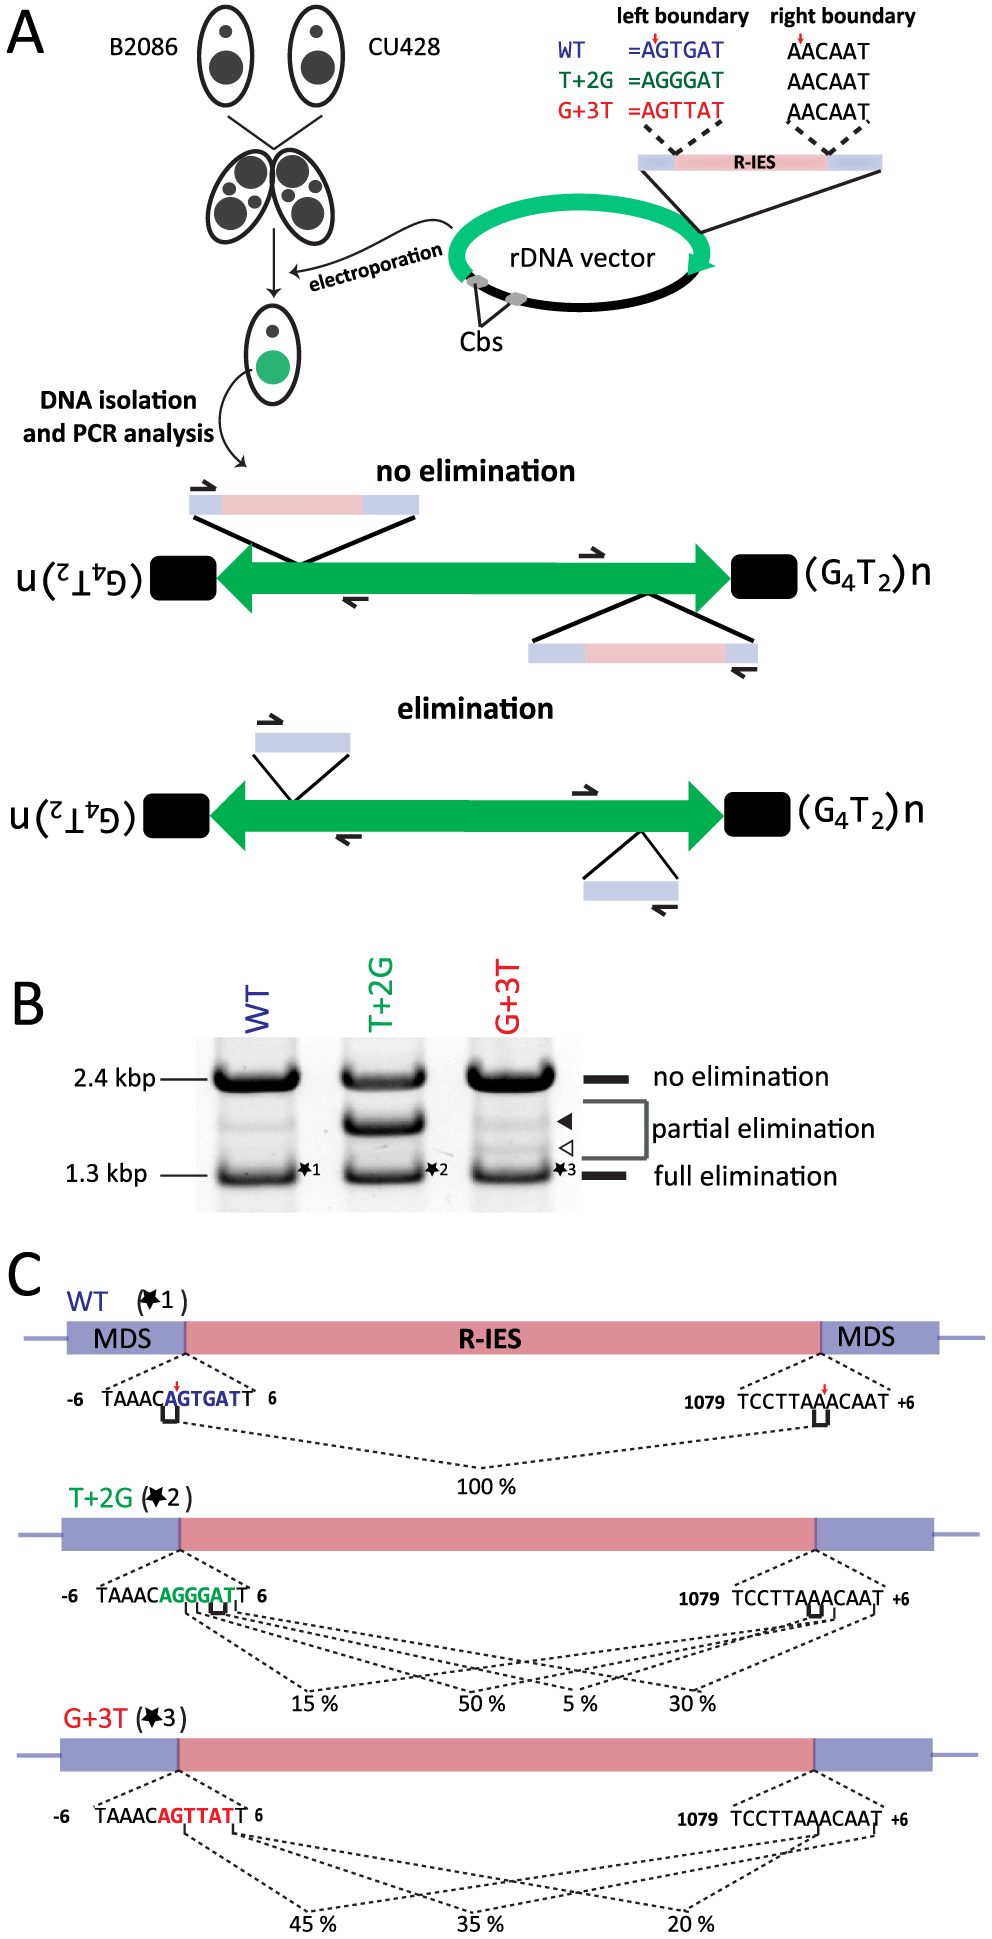 In vivo elimination assay using mutated R-IES boundaries.